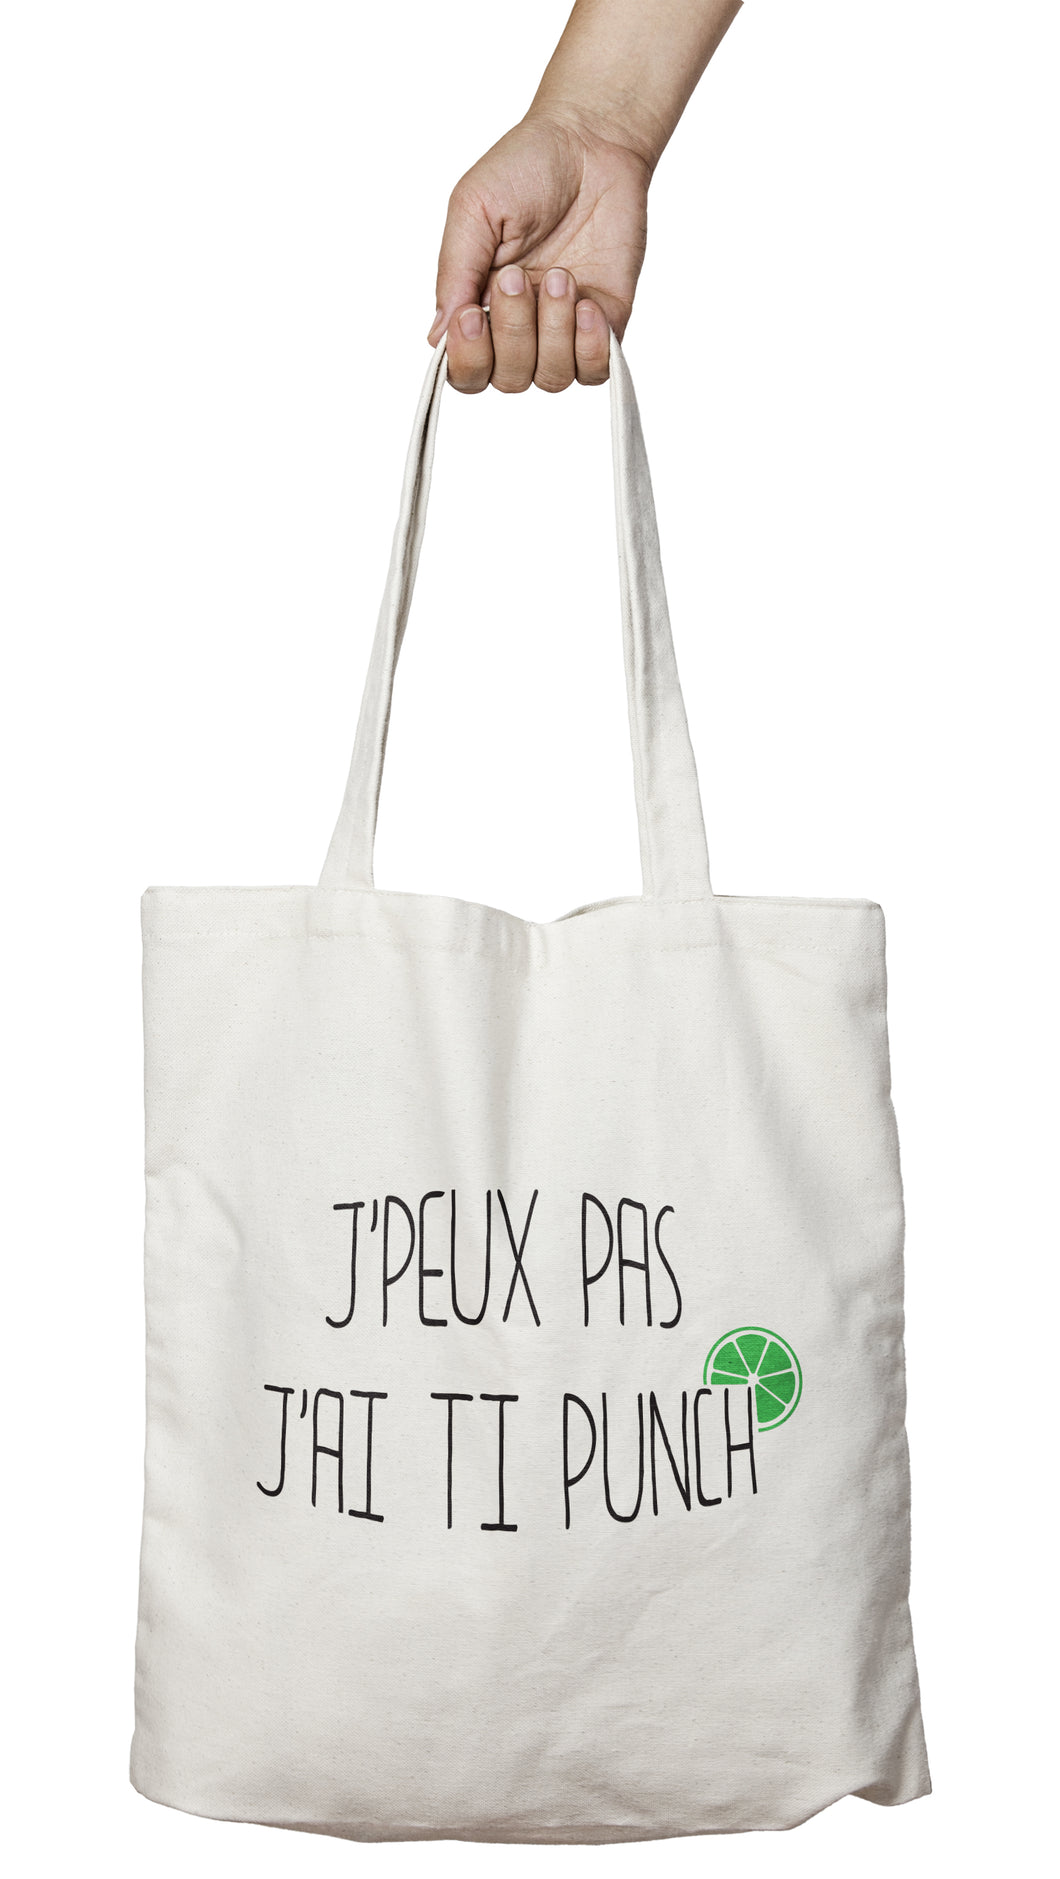 Tote bag original j'peux pas j'ai Ti punch boisson alcool cocktail So Custom